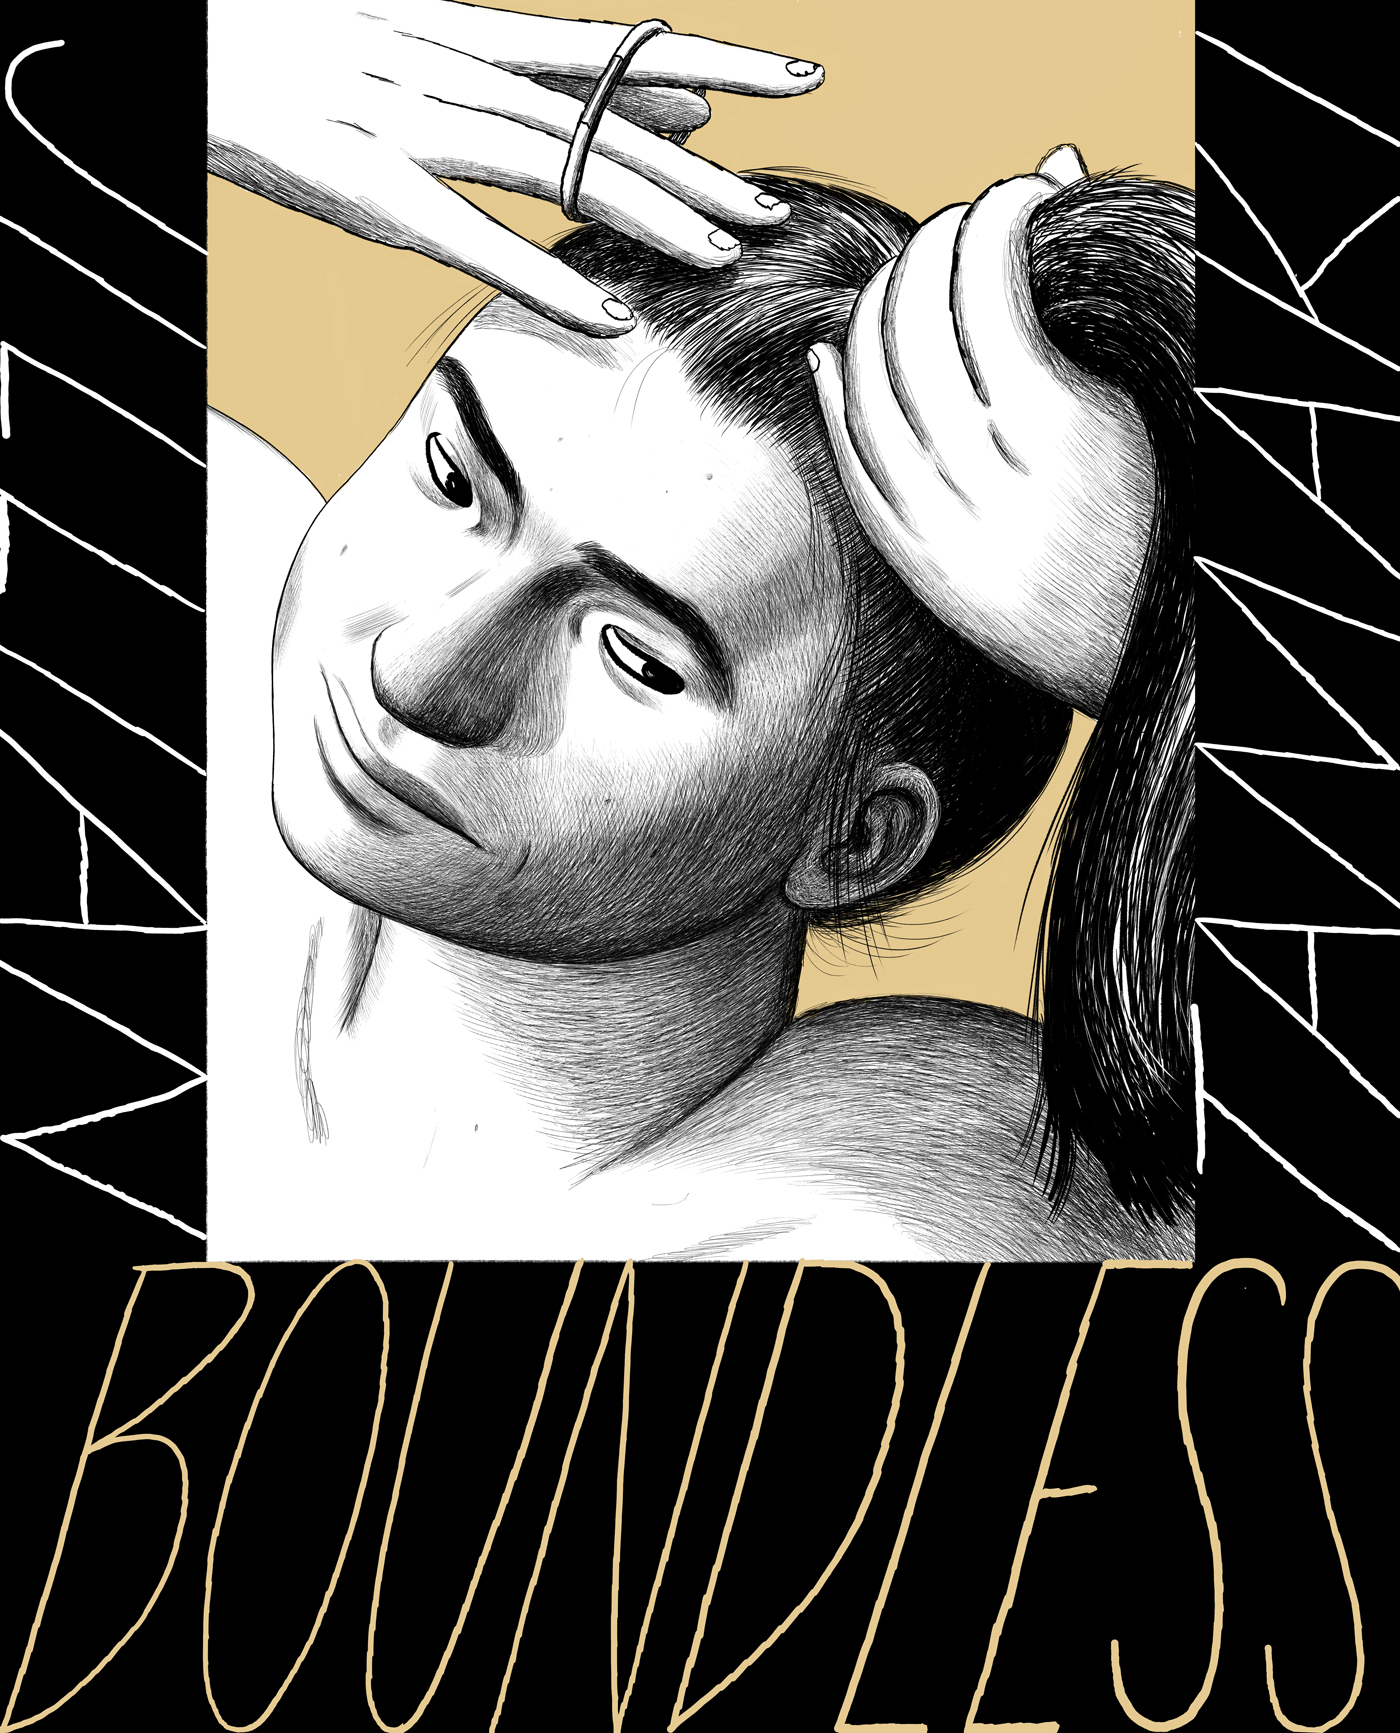 http://www.pastemagazine.com/articles/boundless.cover-1400.jpg